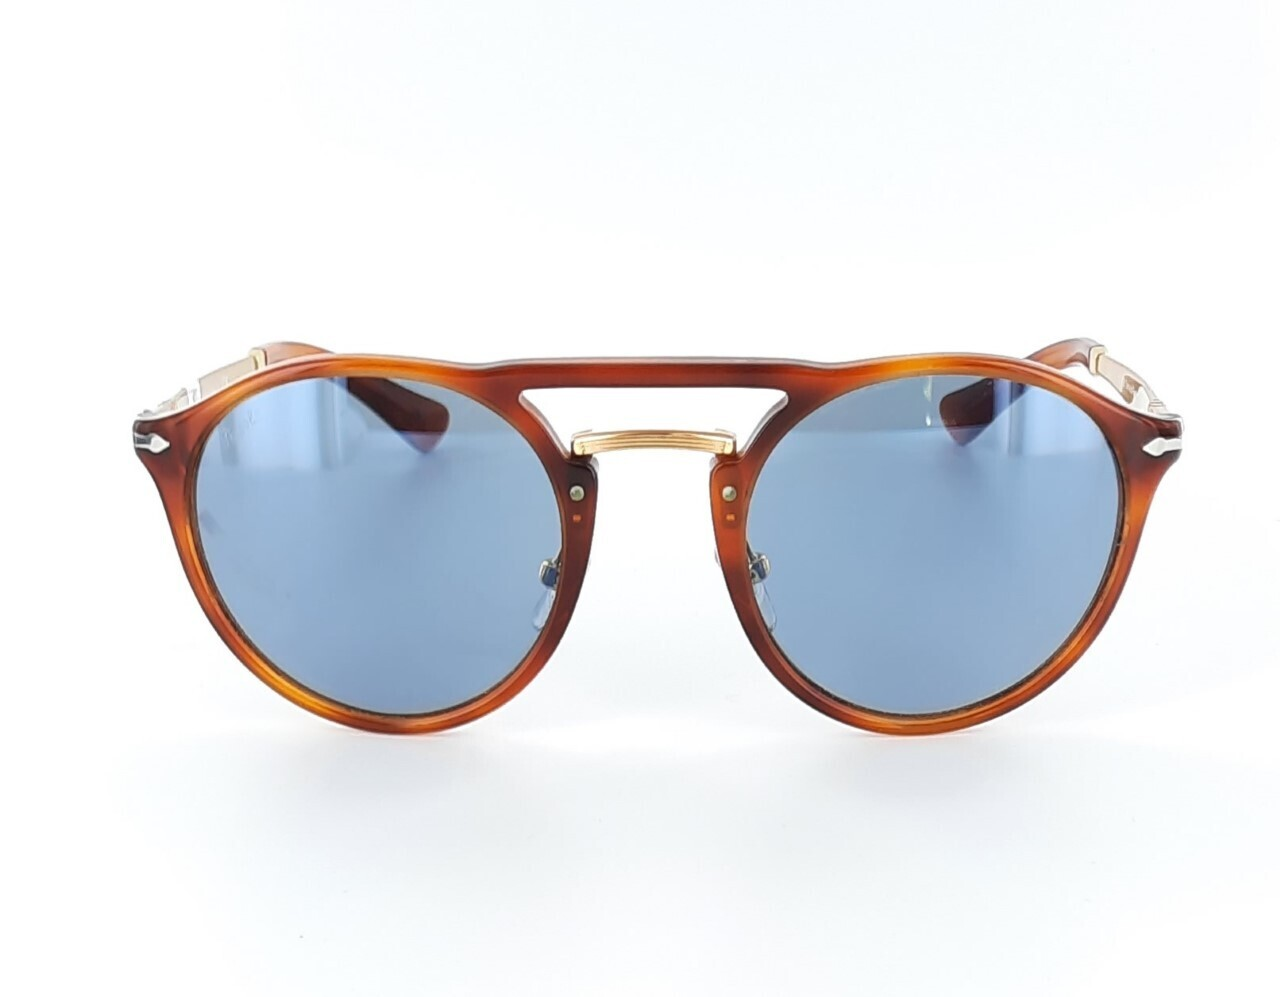 Persol 3264S  9656  50 22